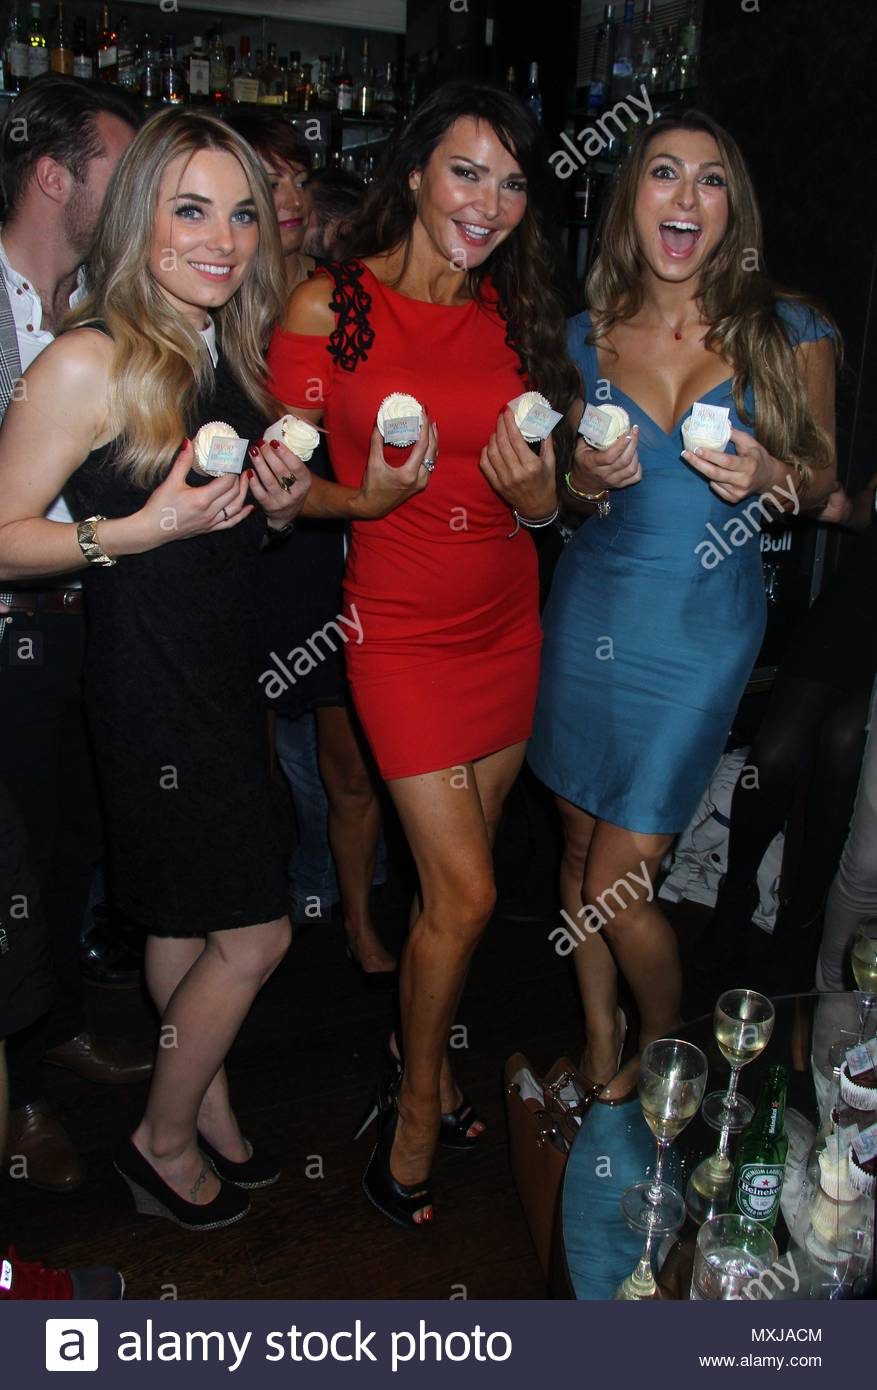 Sian welby lizzie cundy and luisa zissman the 3030 body sian welby lizzie cundy and luisa zissman the 3030 body blueprint book launch party at the sanctum hotel malvernweather Image collections